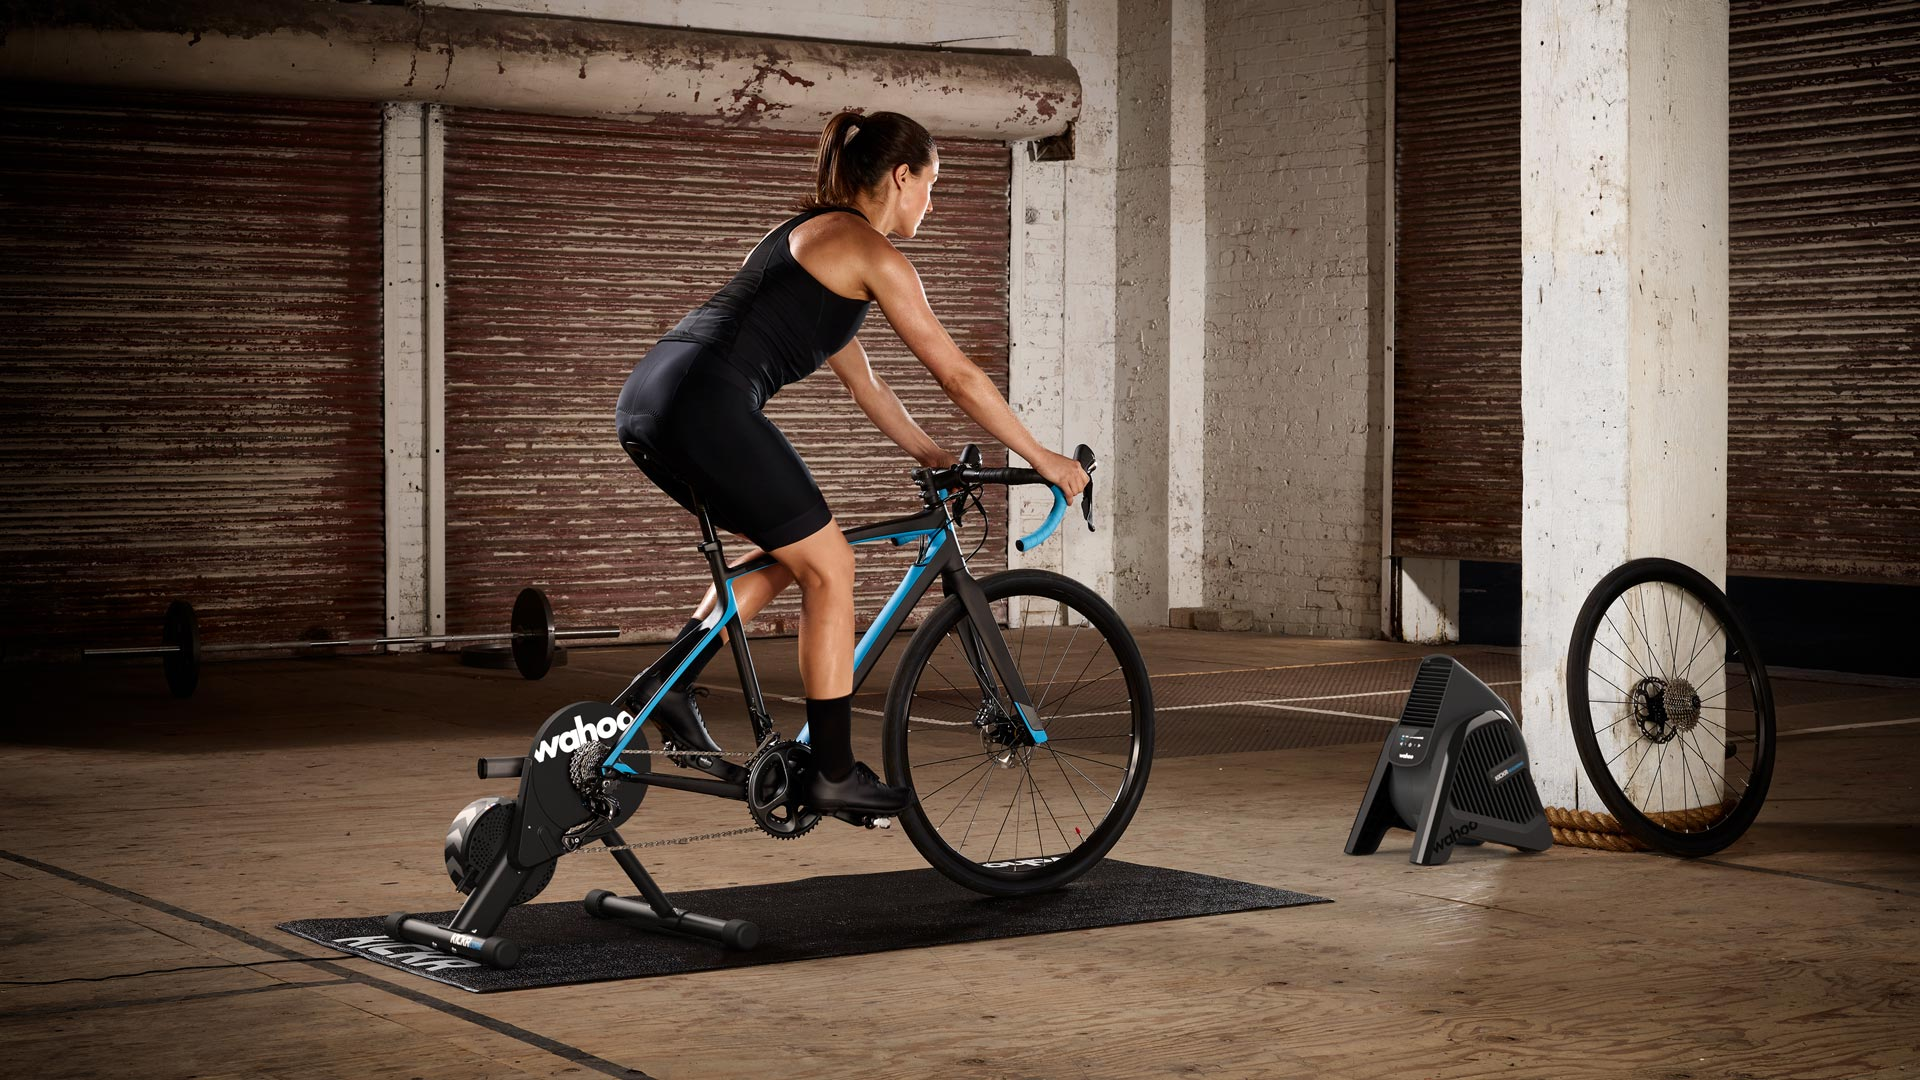 Wahoo product marketing image of a woman in athletic gear riding a stationary bike